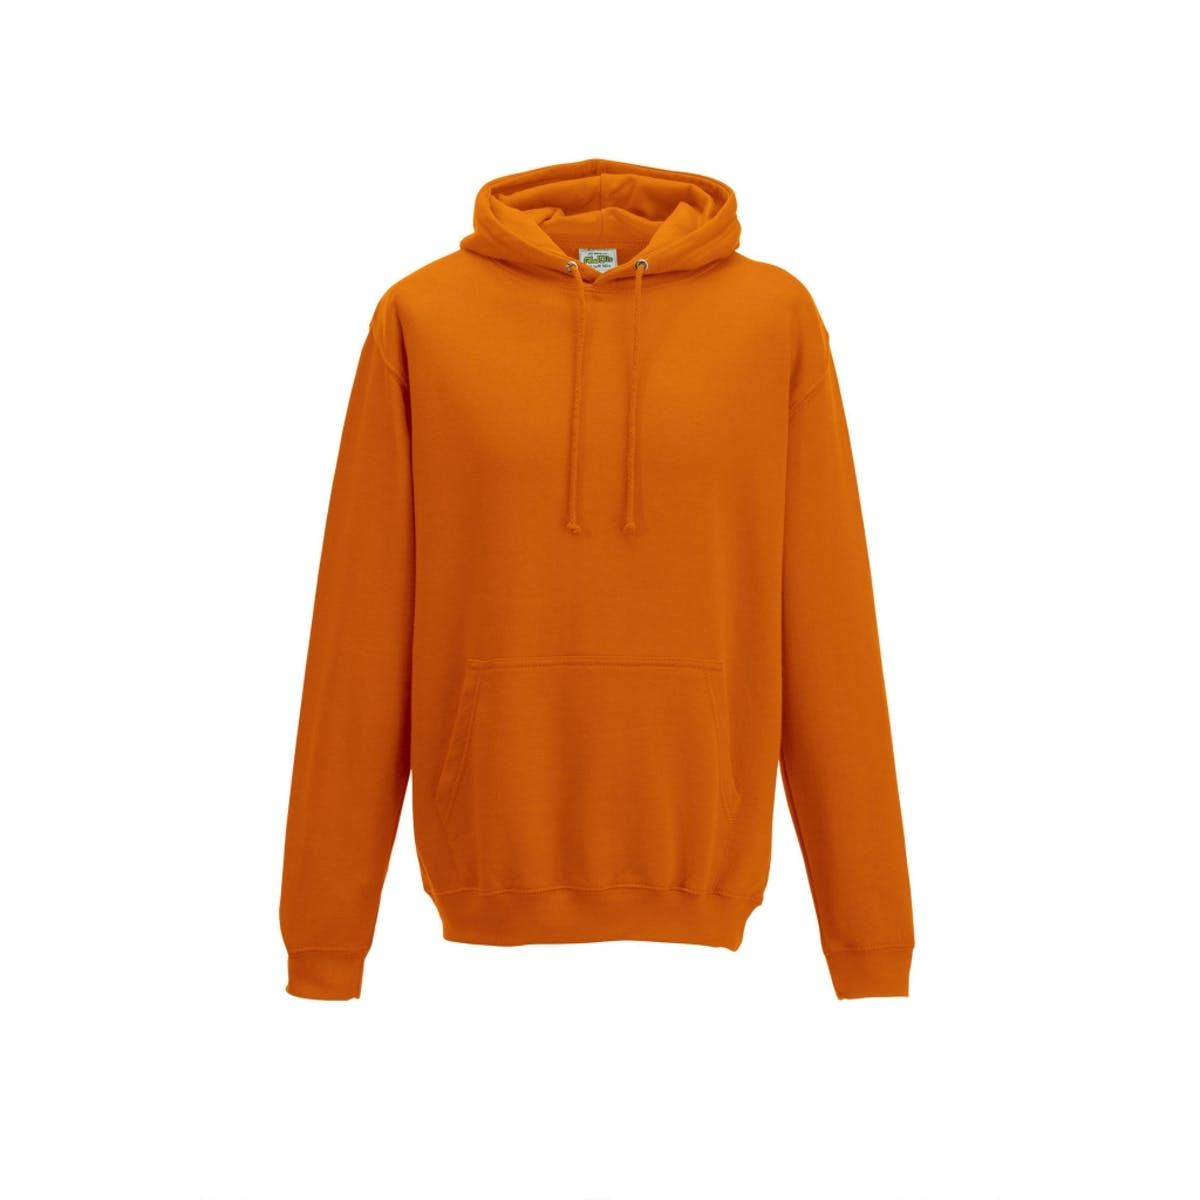 orange crush college hoodies